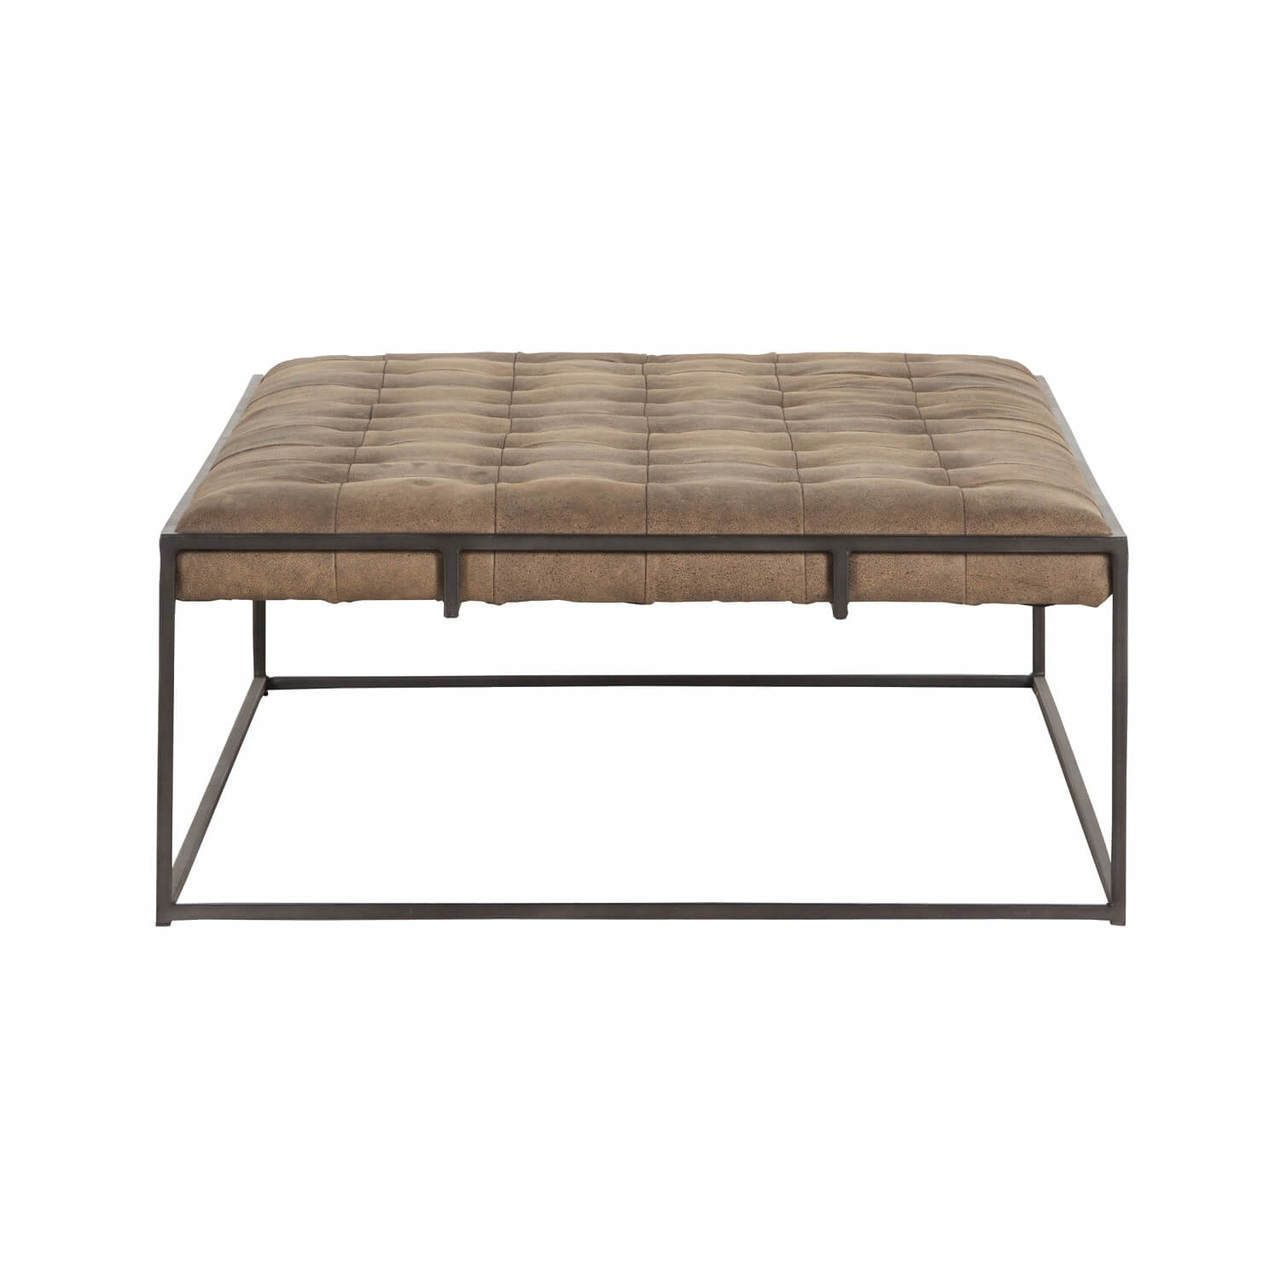 Distressed Leather Ottoman Coffee Table.Oxford Tufted Distressed Umber Leather Ottoman Coffee Table Stools